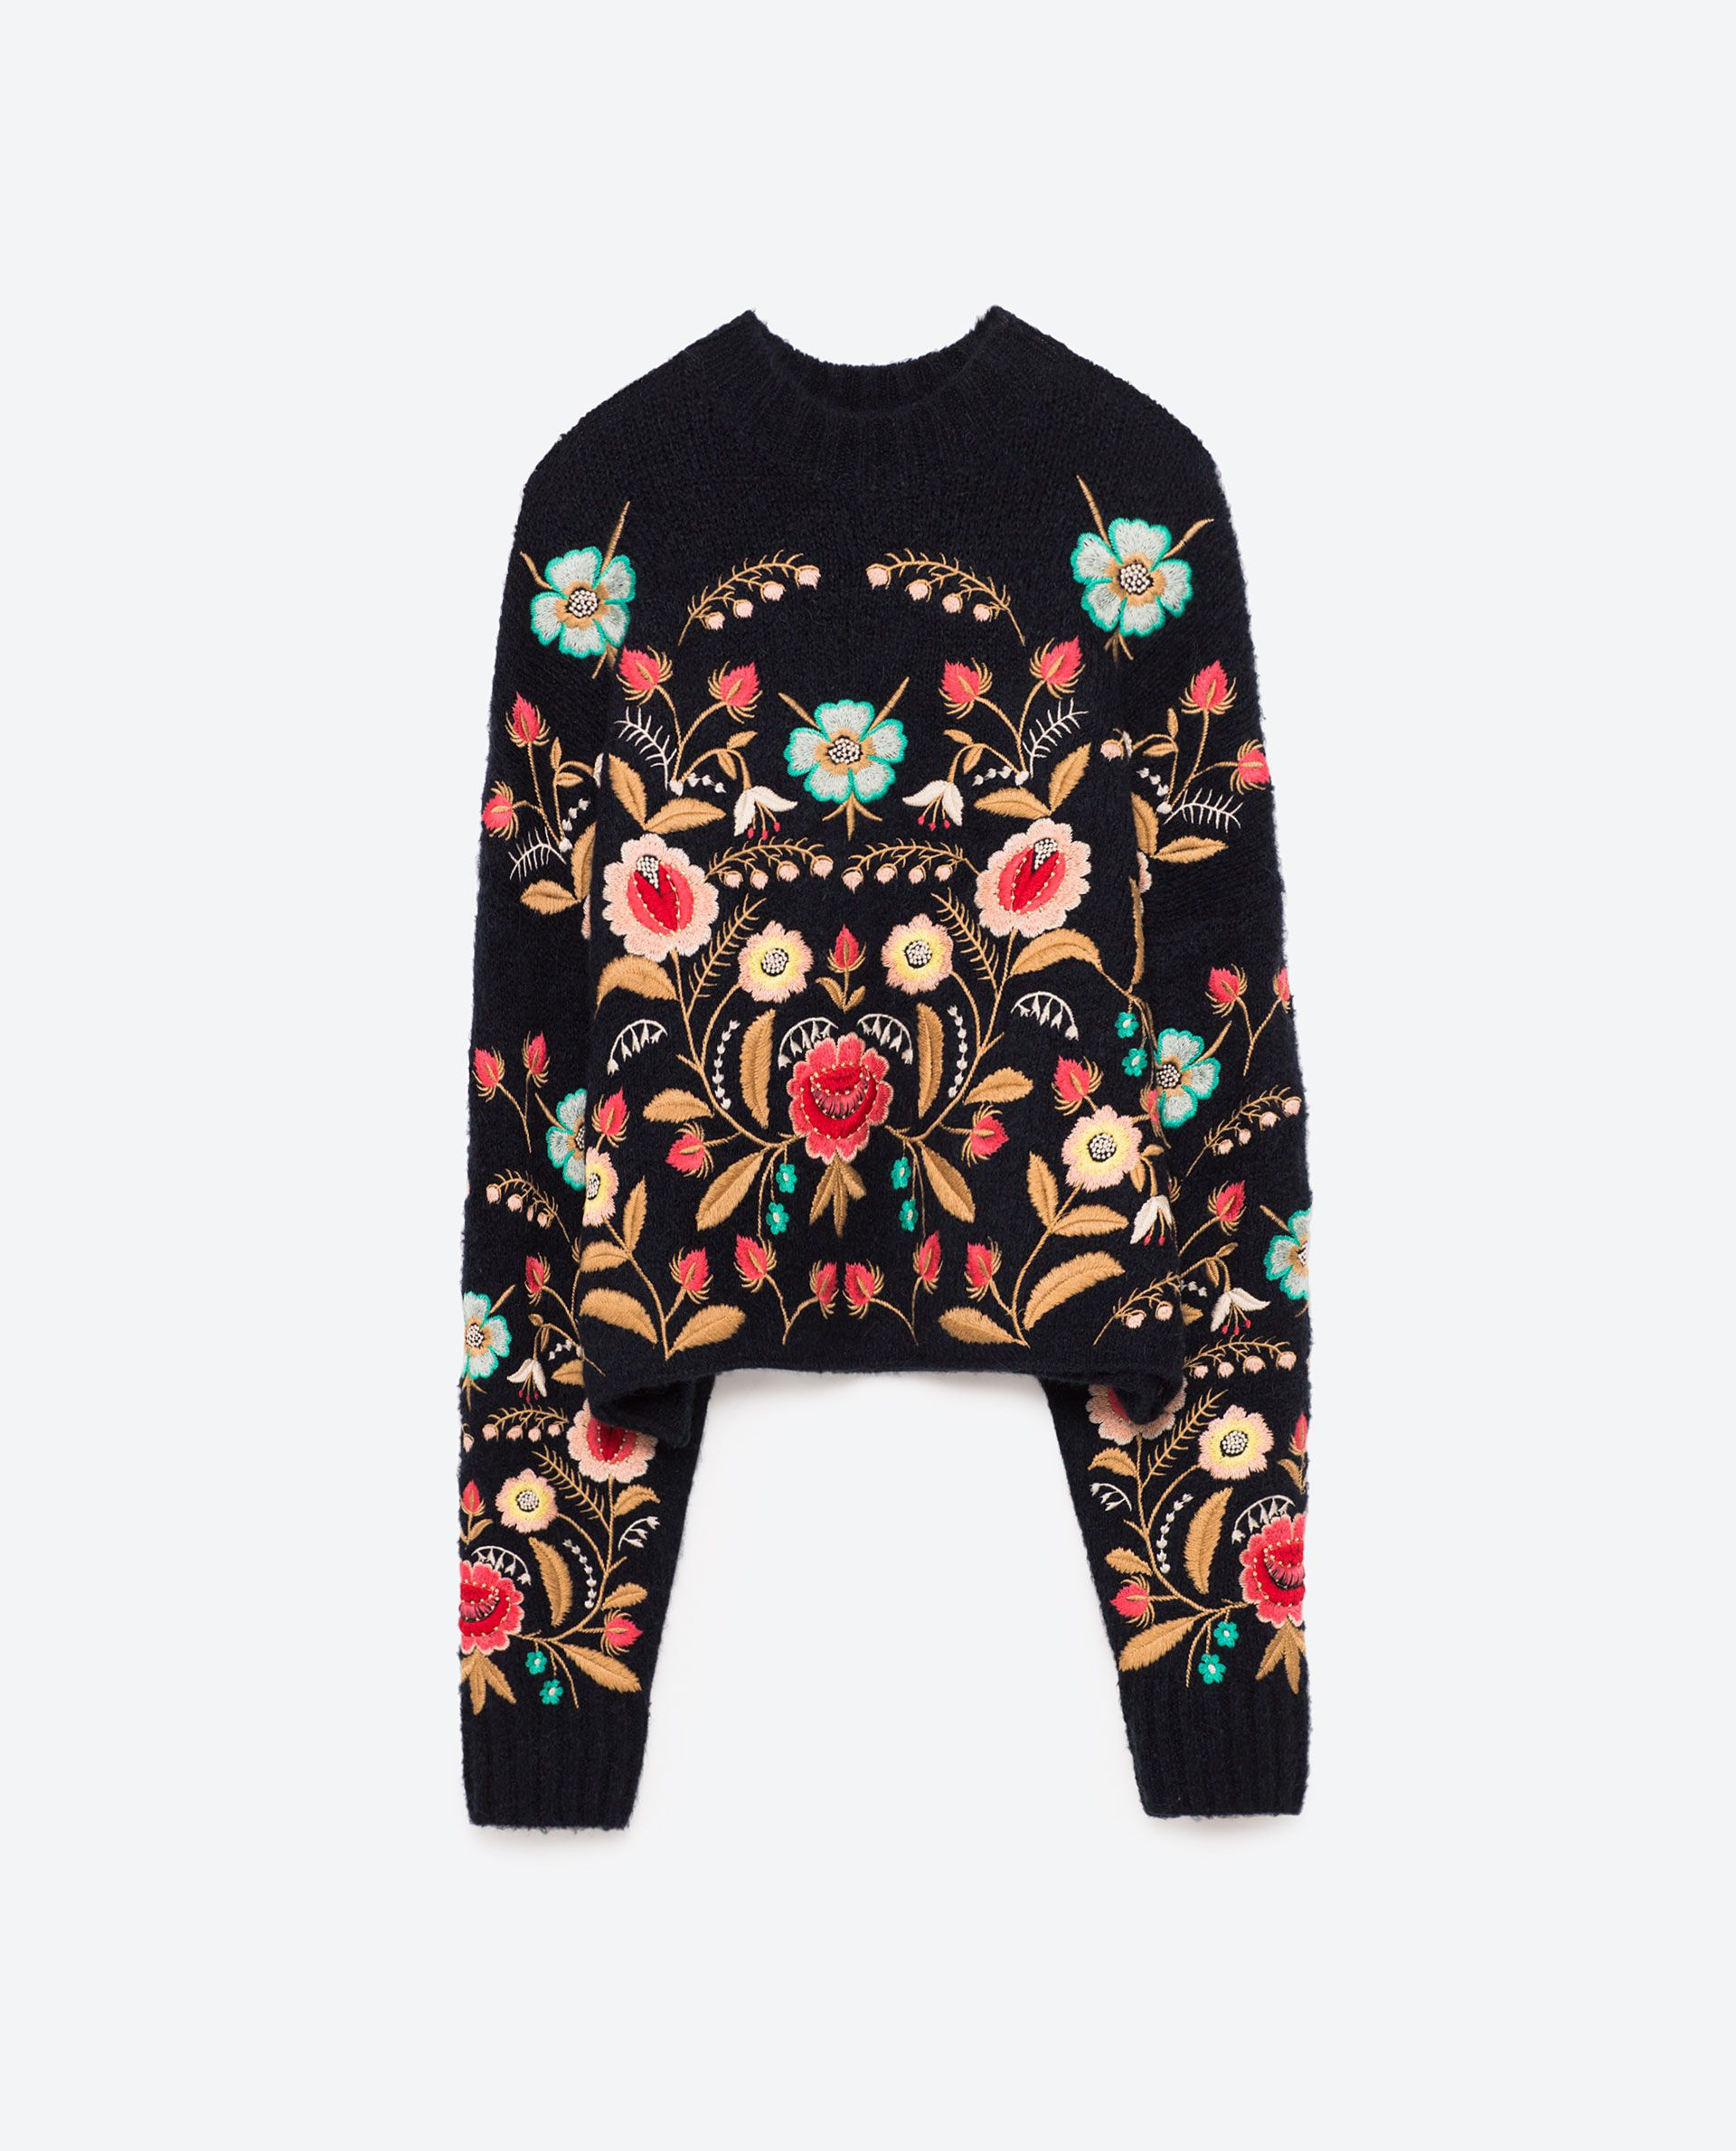 97162bd5f2 Image 8 of FLORAL EMBROIDERED SWEATER from Zara